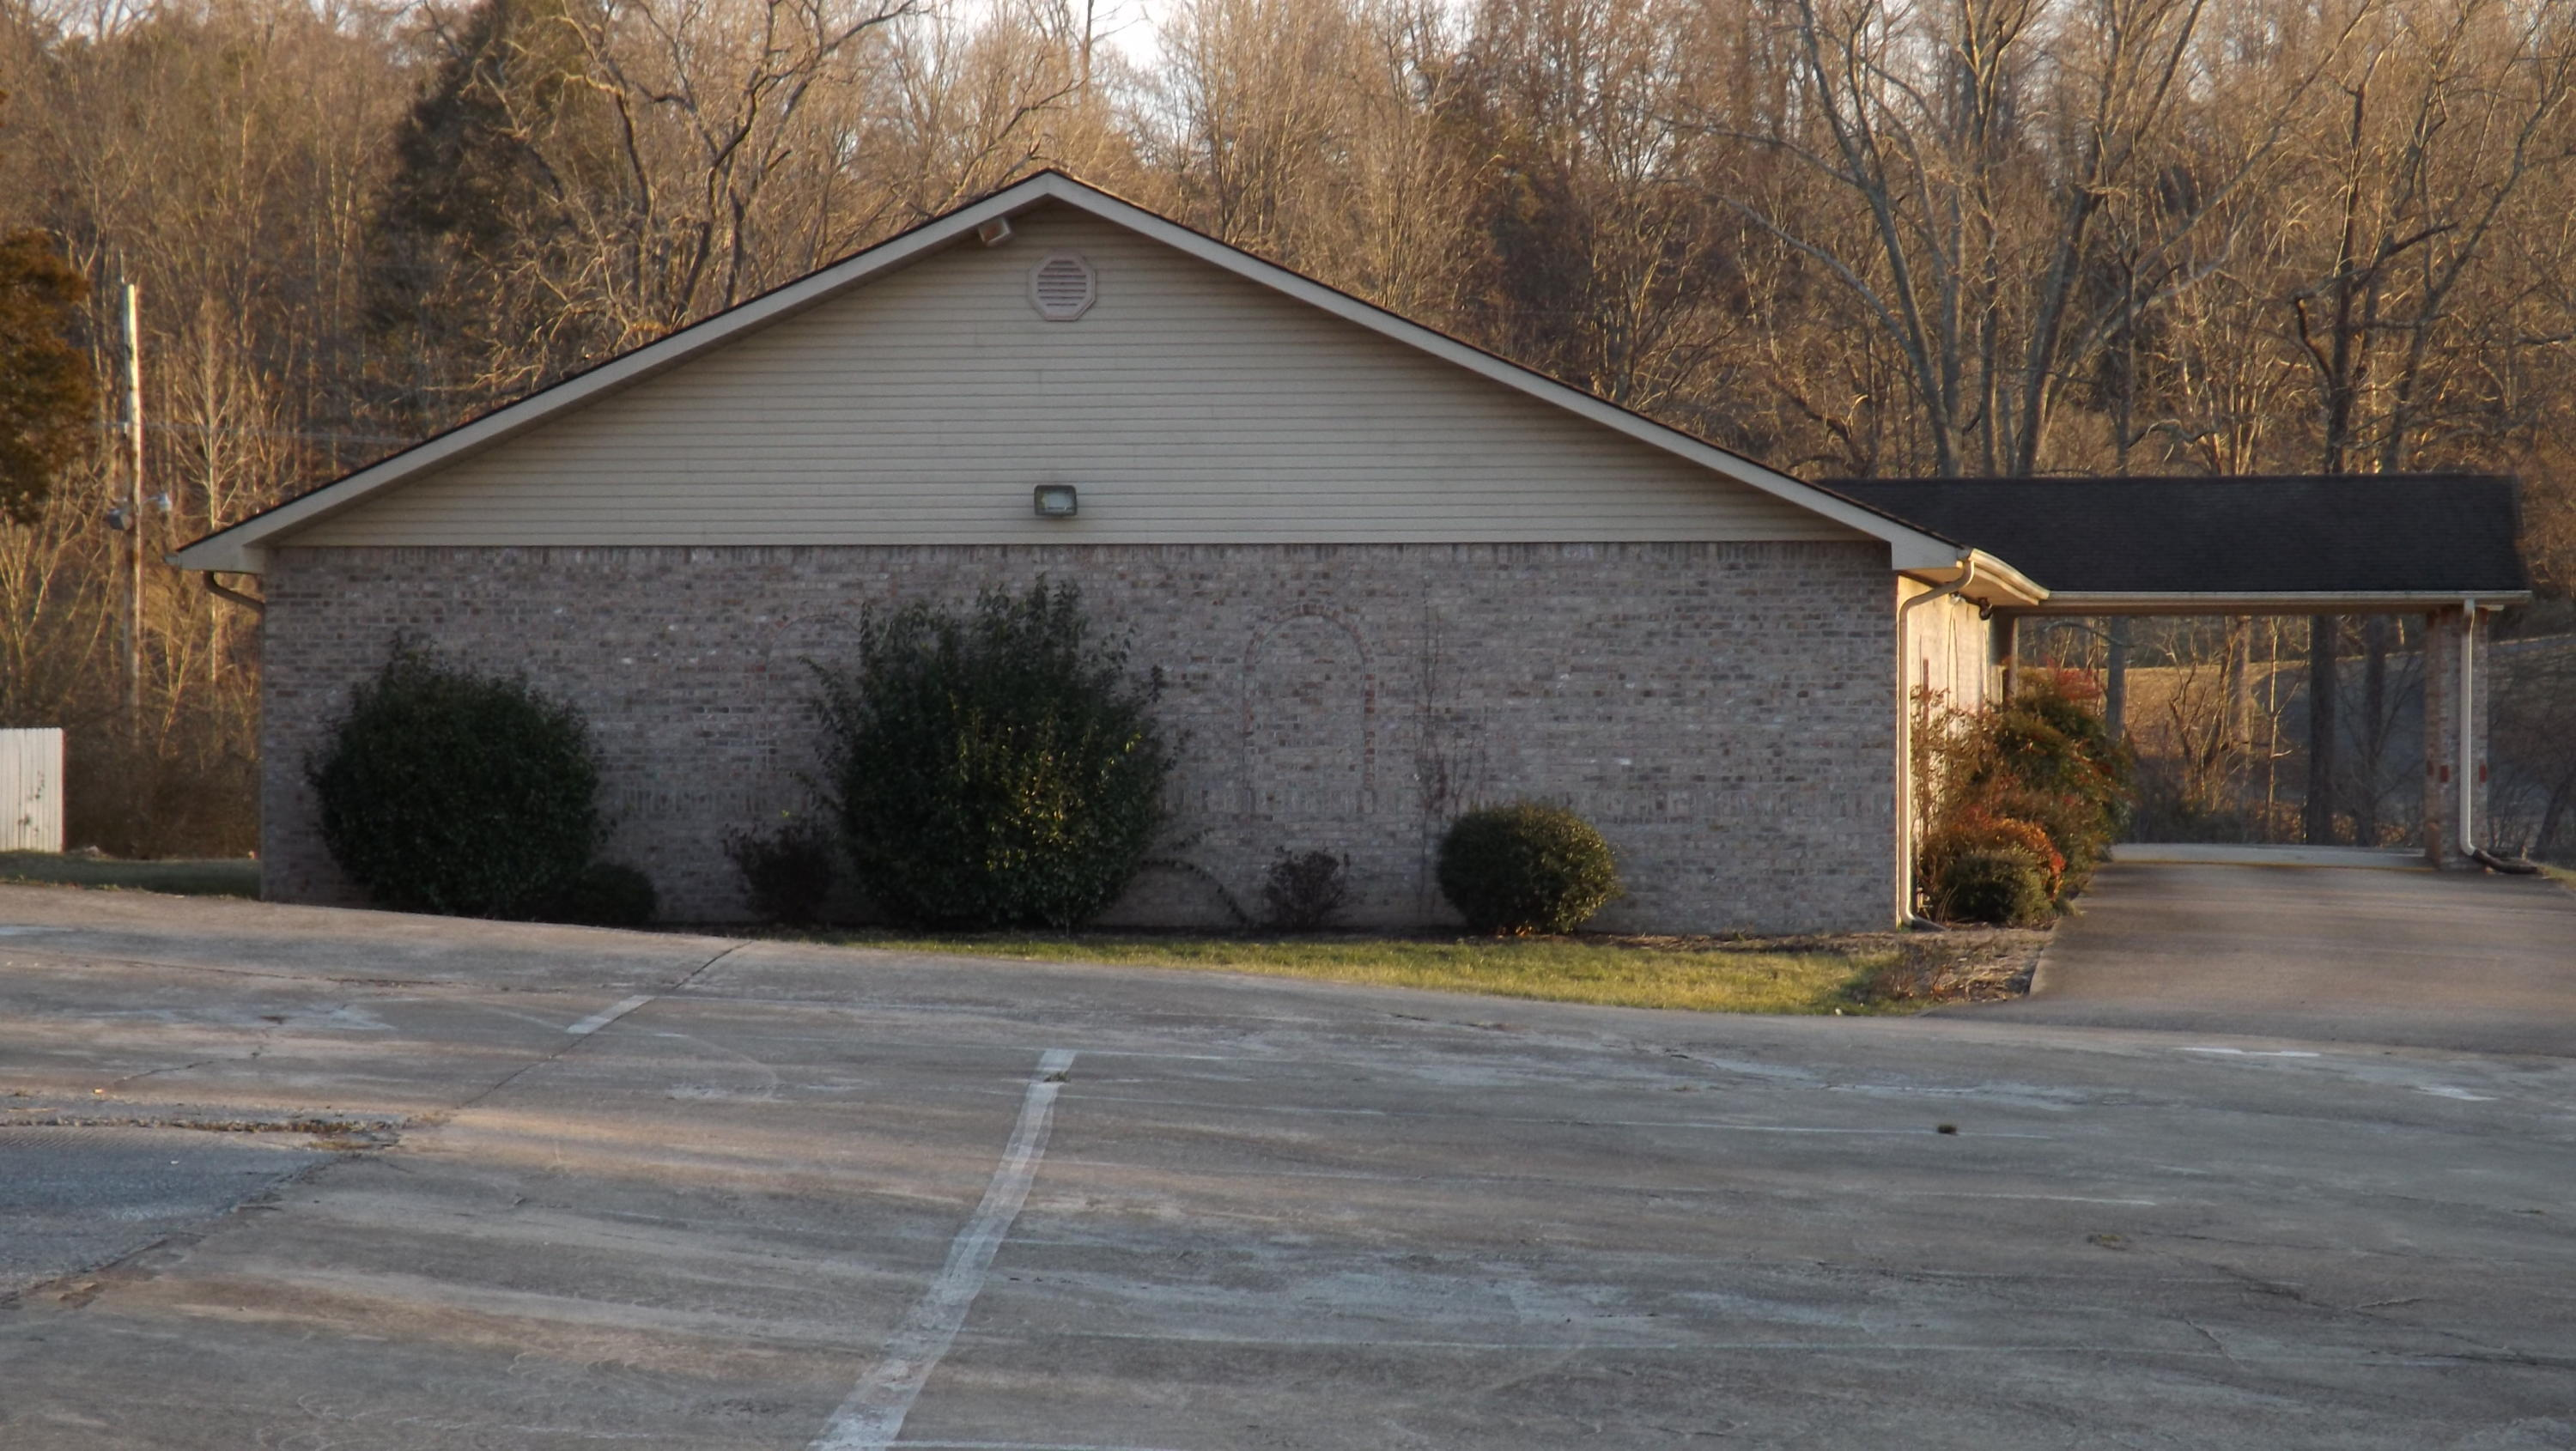 1230 Highway 63, Cumberland Gap, Tennessee 37724, ,Commercial,For Sale,Highway 63,1068457